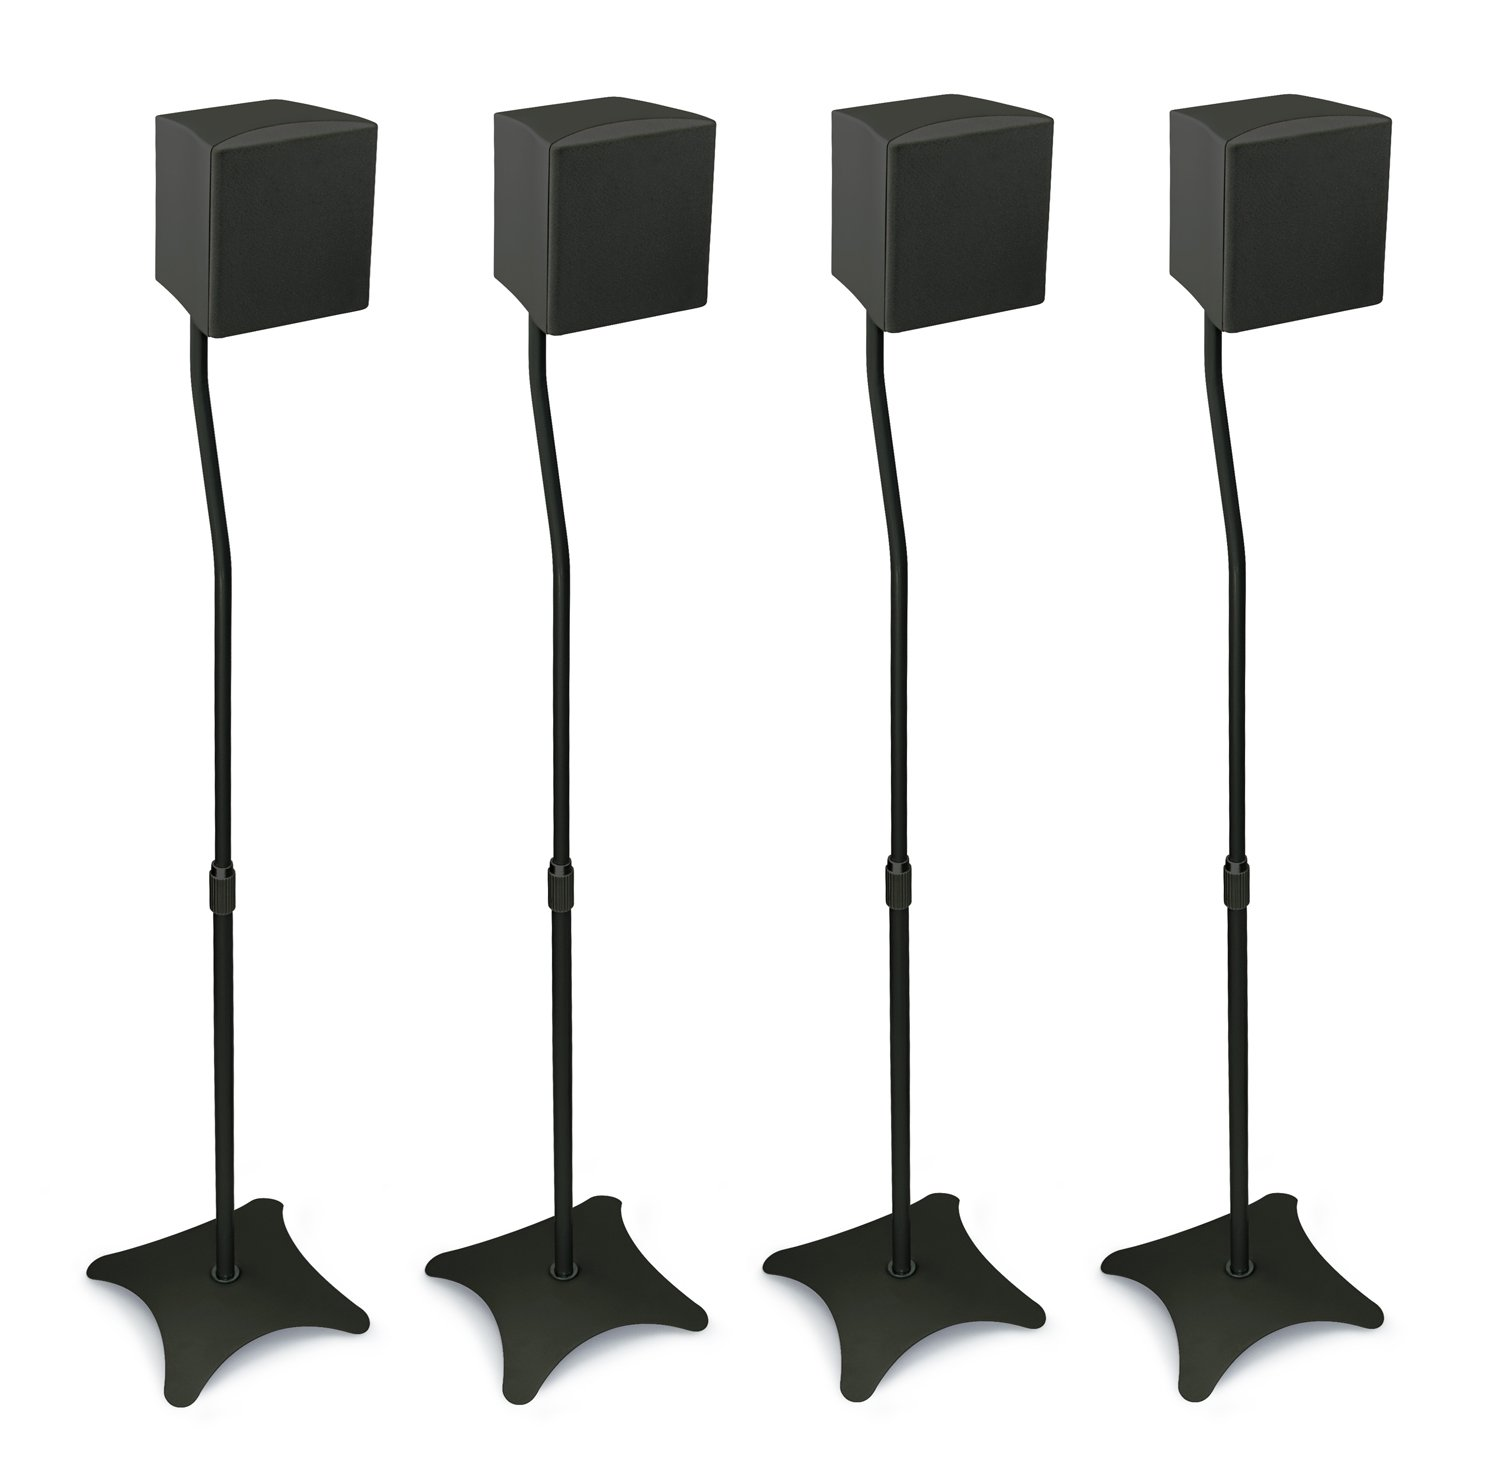 Amazoncom MountIt MI1214 Speaker Stands for Home Theater 51